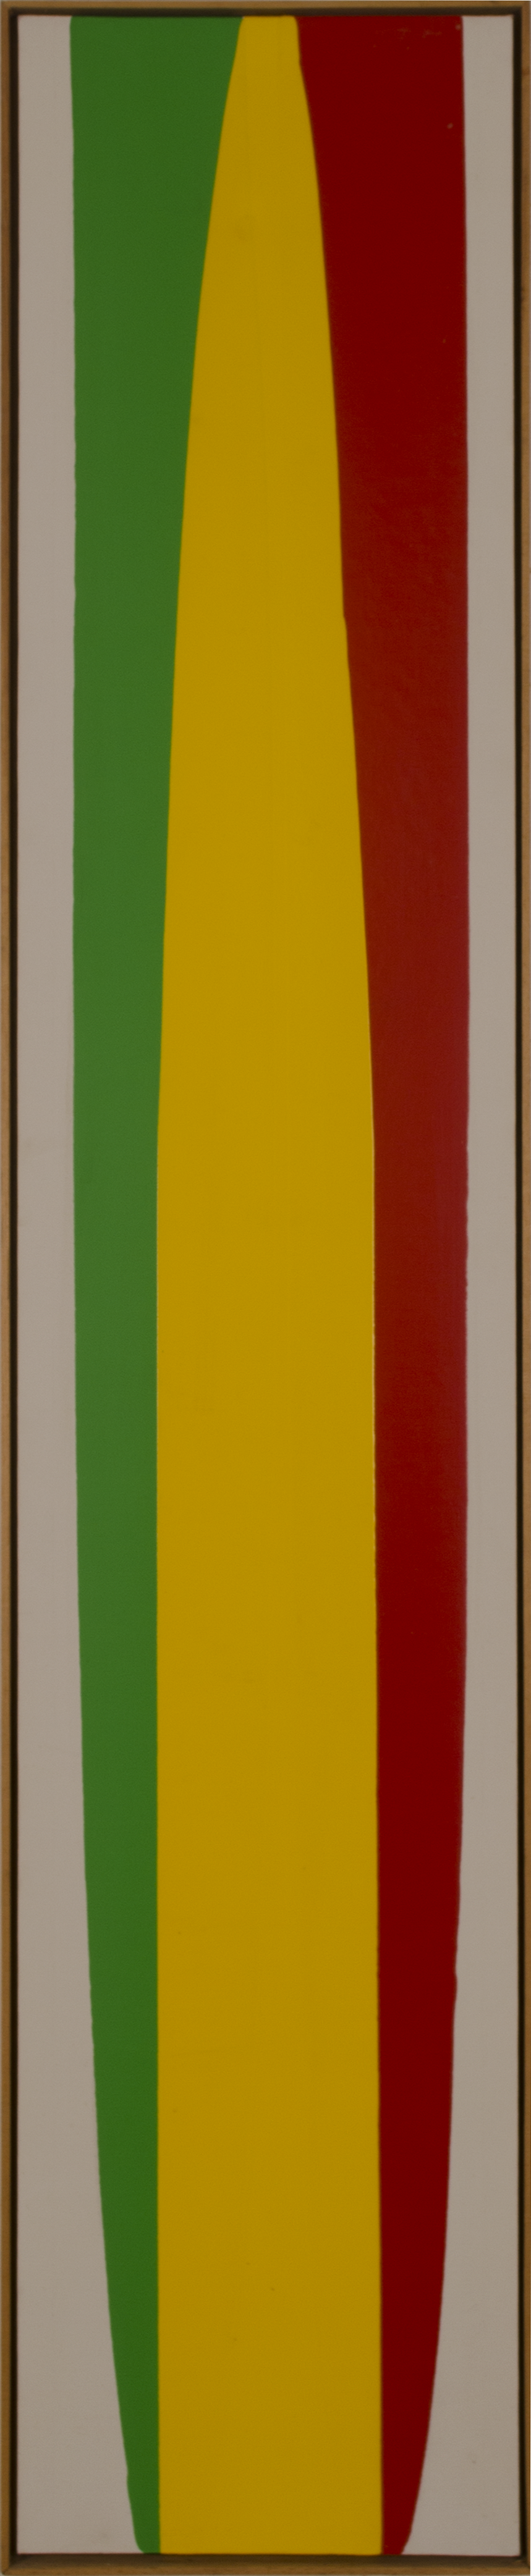 GREEN YELLOW RED 1974 ©acrylic paint on primed canvas